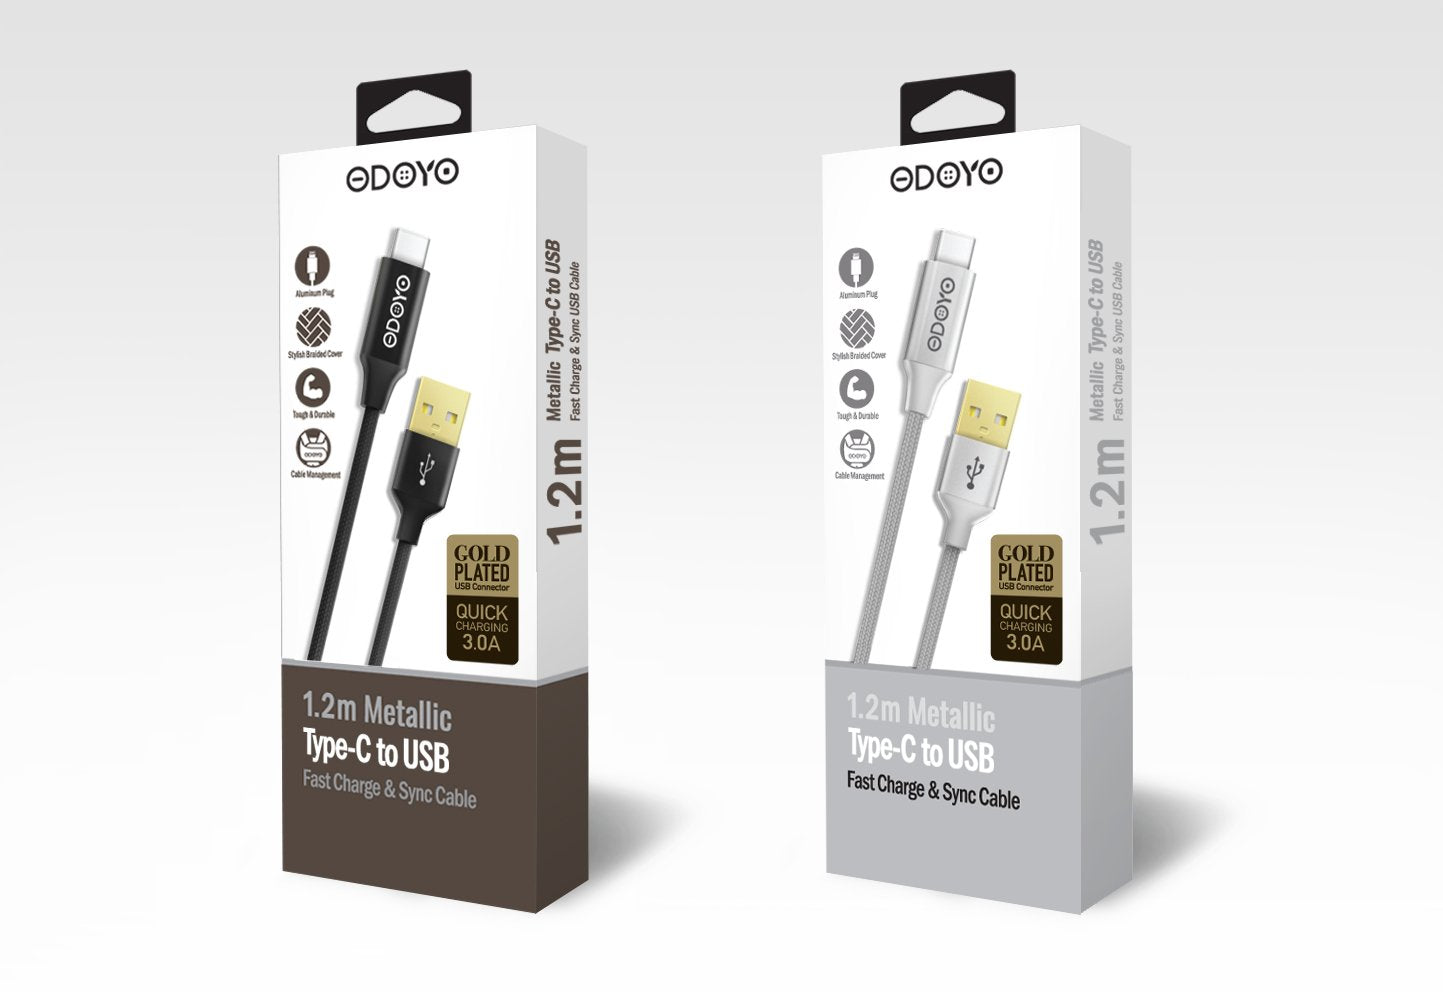 Odoyo USB C Cable